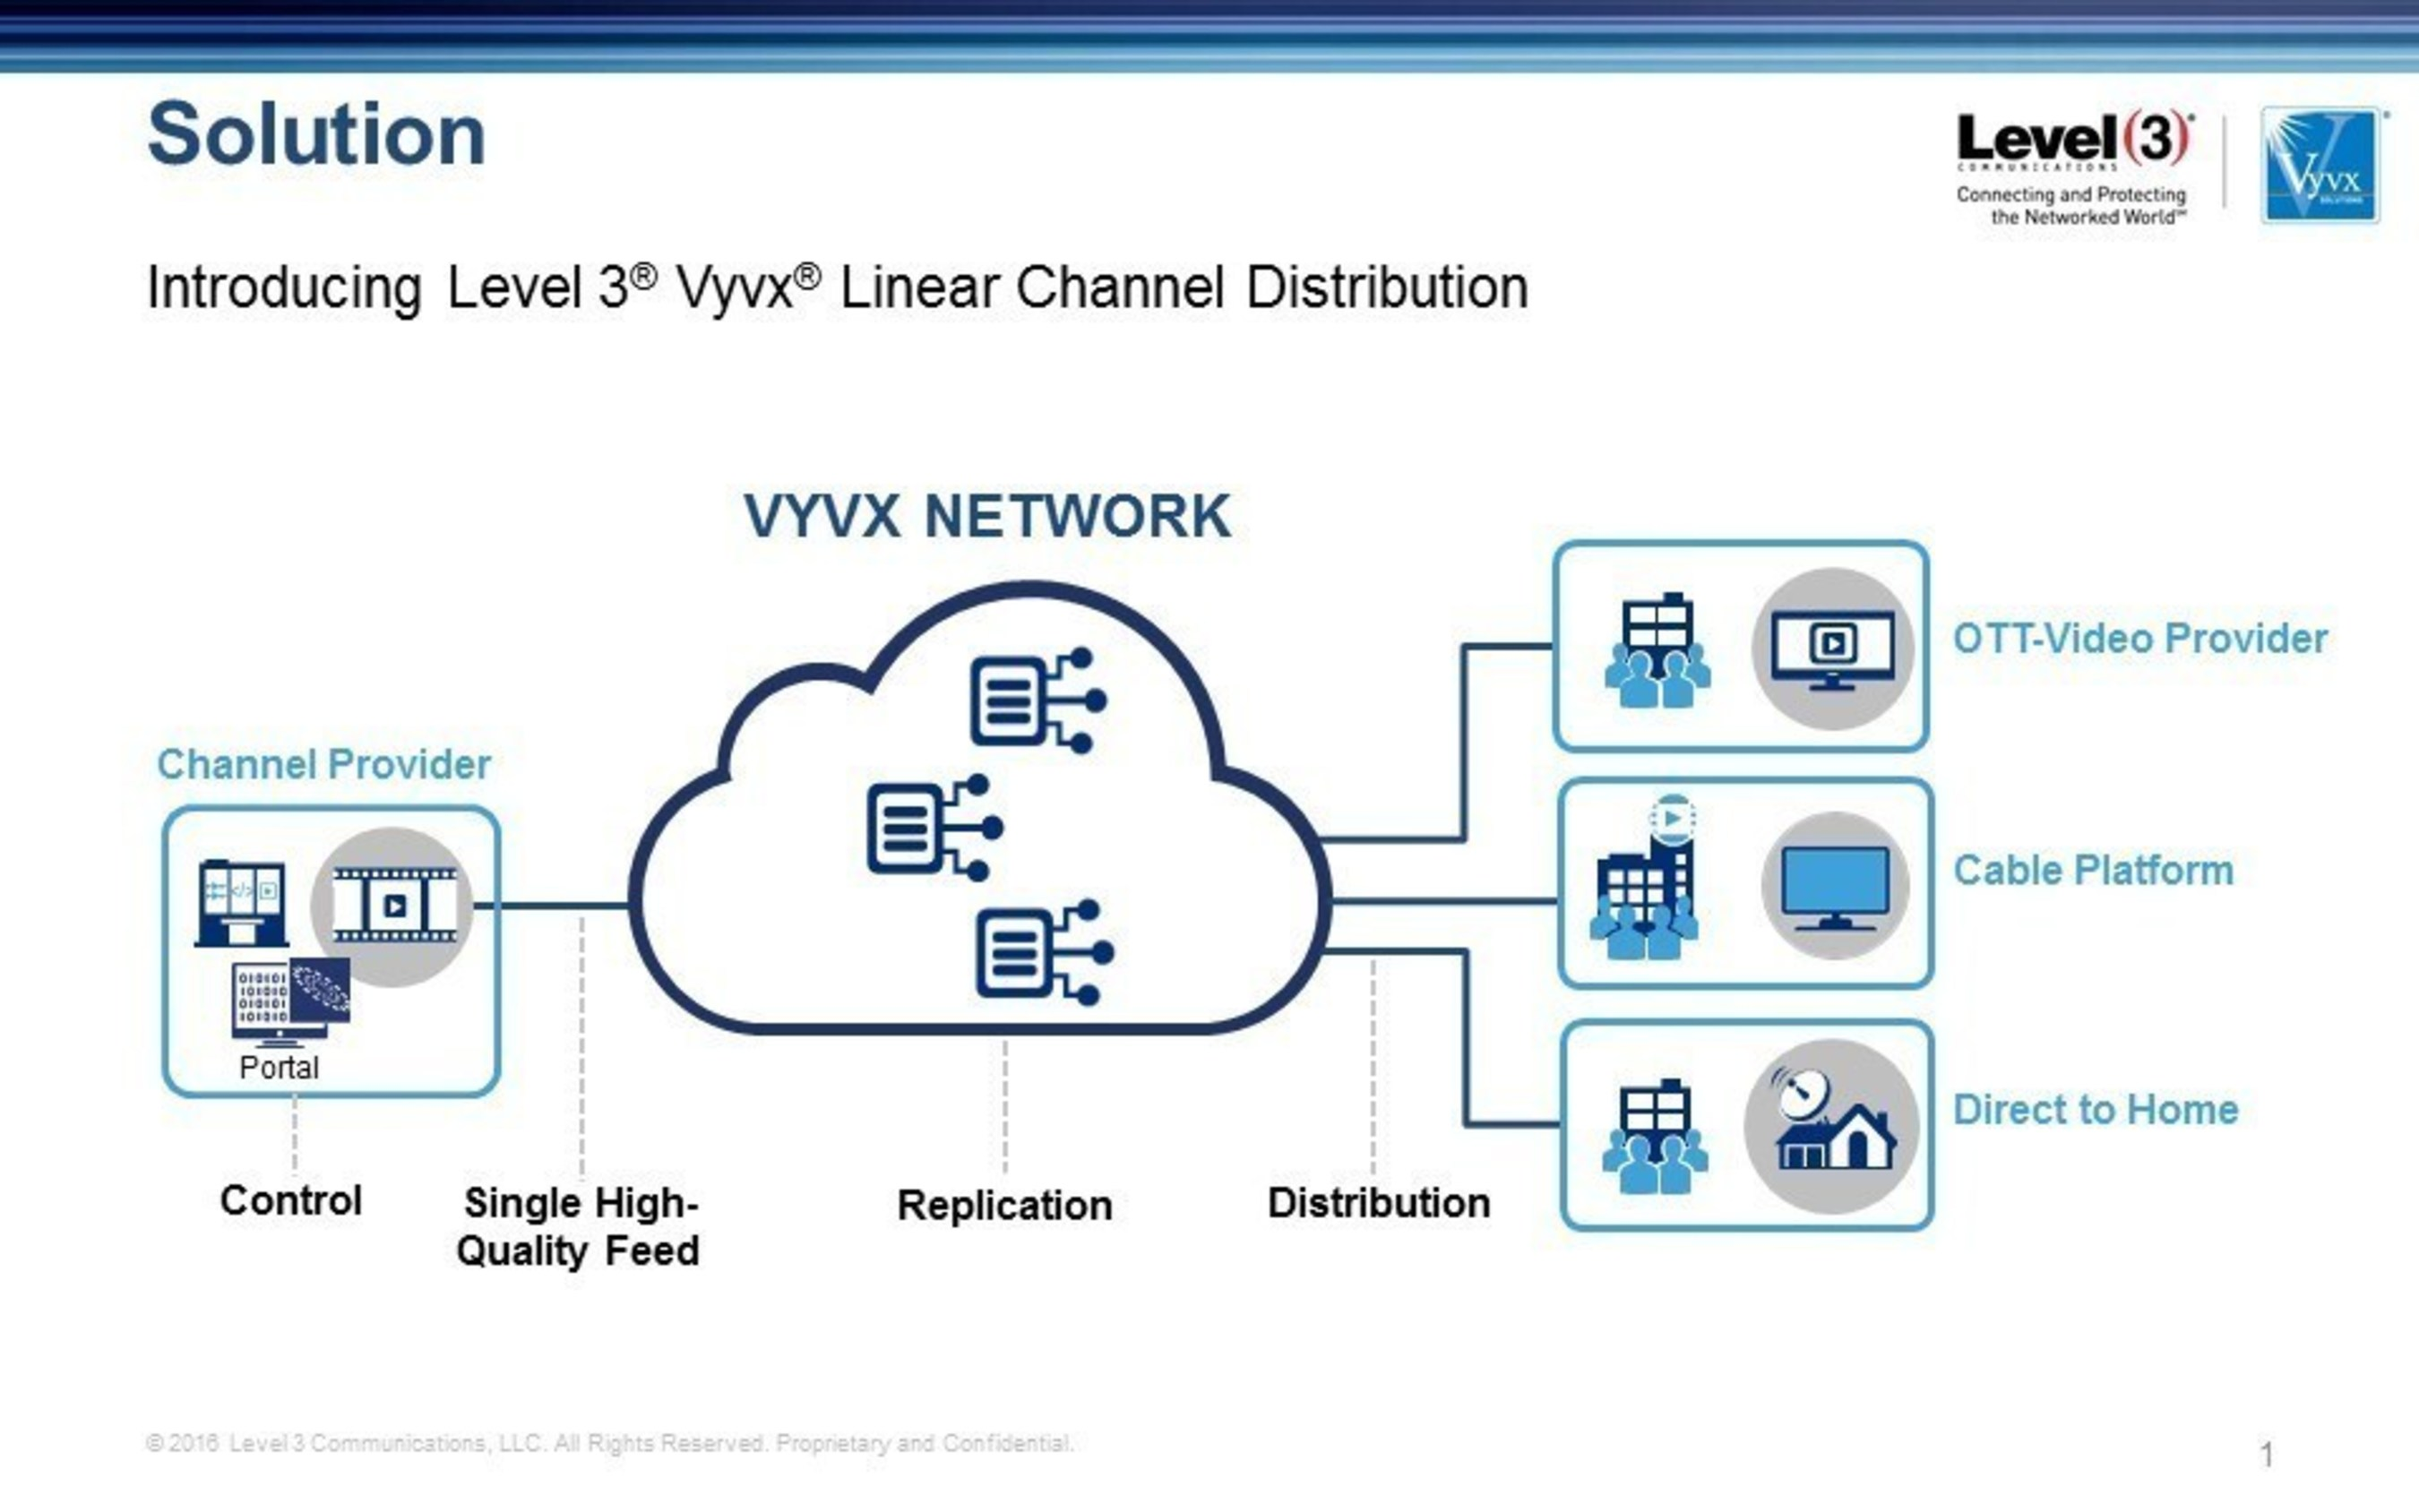 Level 3's Vyvx Linear Channel Distribution service takes high-quality television channels from programmers and replicates them for delivery to multichannel video program distributors (MVPDs) such as cable and satellite companies, and over-the-top (OTT) video providers.